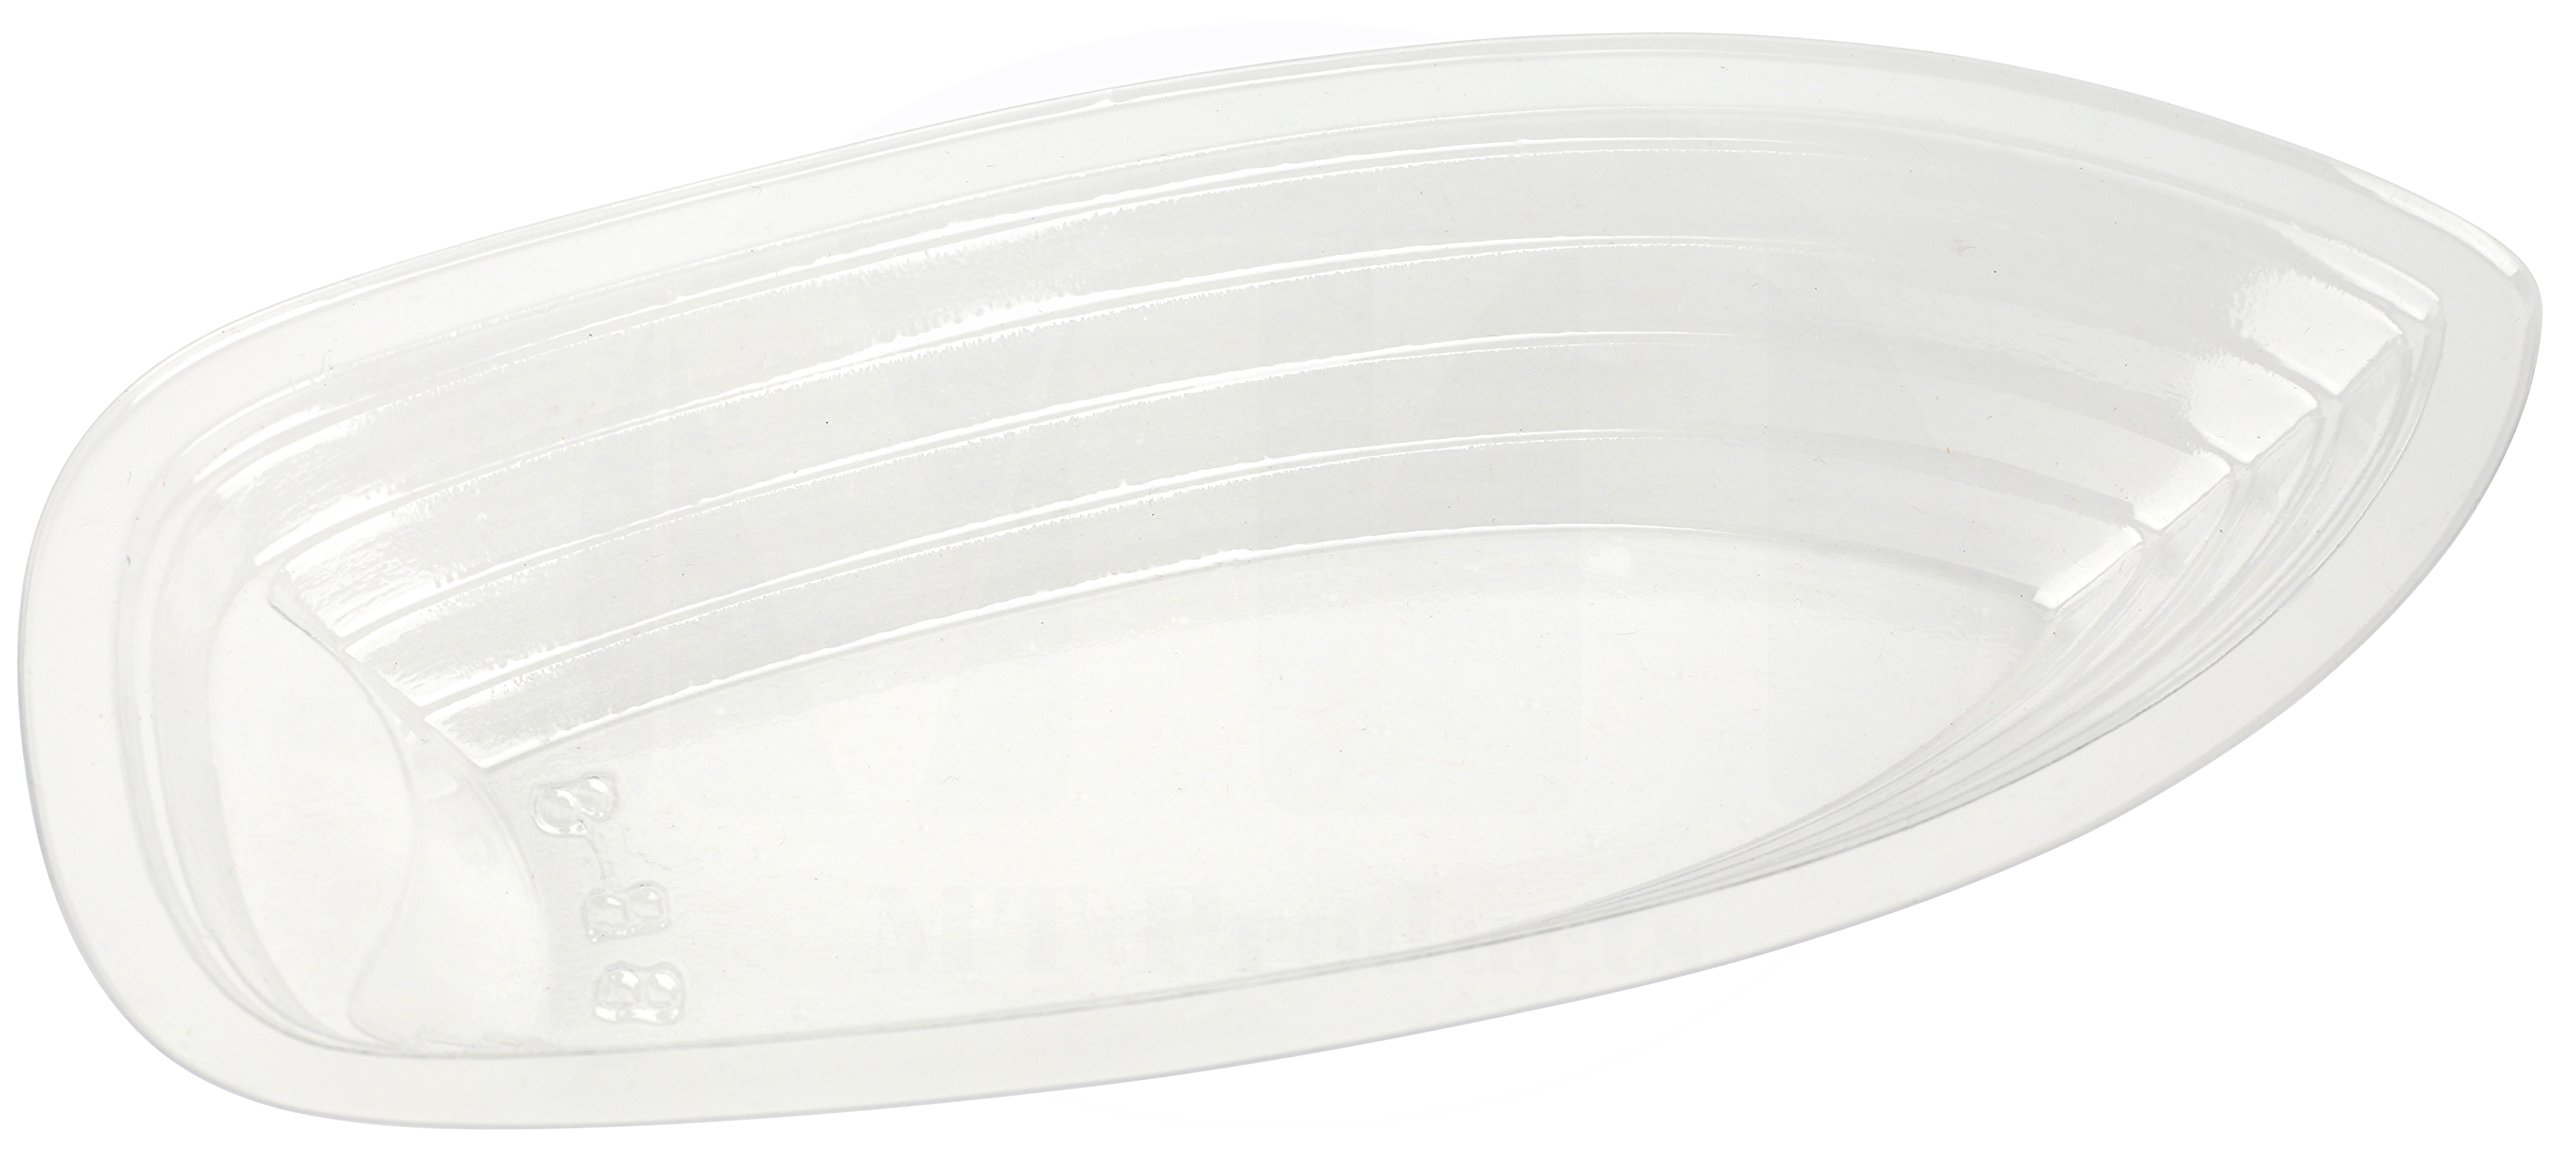 MT Products 12 oz. Clear Plastic Disposable Banana Split Boat (30 Pieces) by MT Products (Image #1)